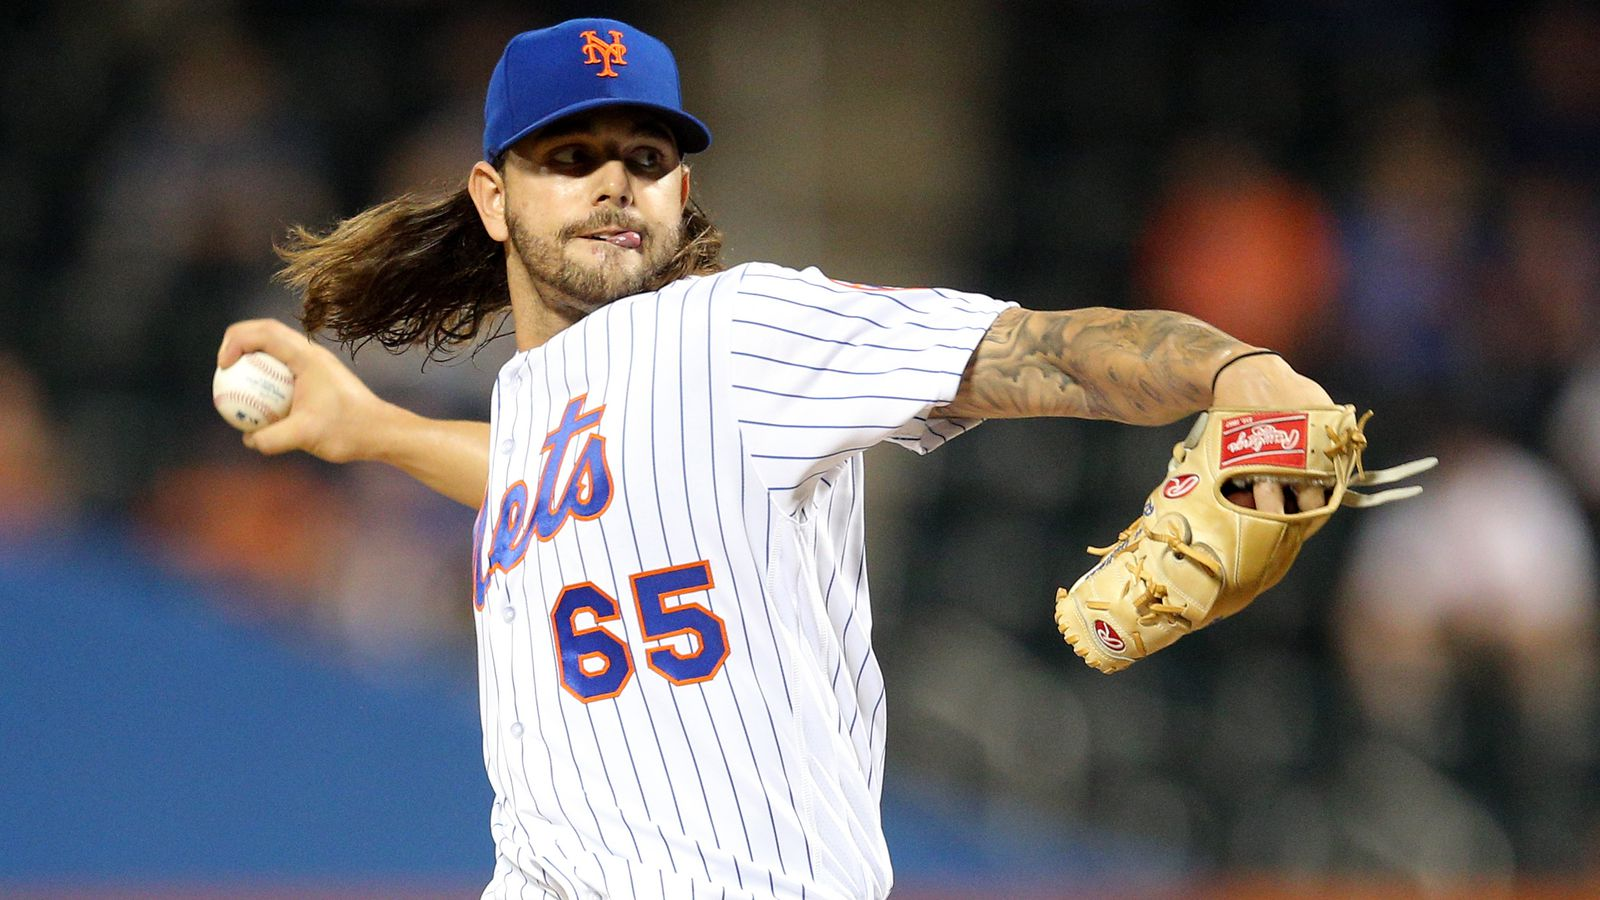 New Jersey RealTime Sports Why Yankees must win AL East Mets deGrom plan Phillies ceiling Tim Tebows future Midseason MLB takeaways